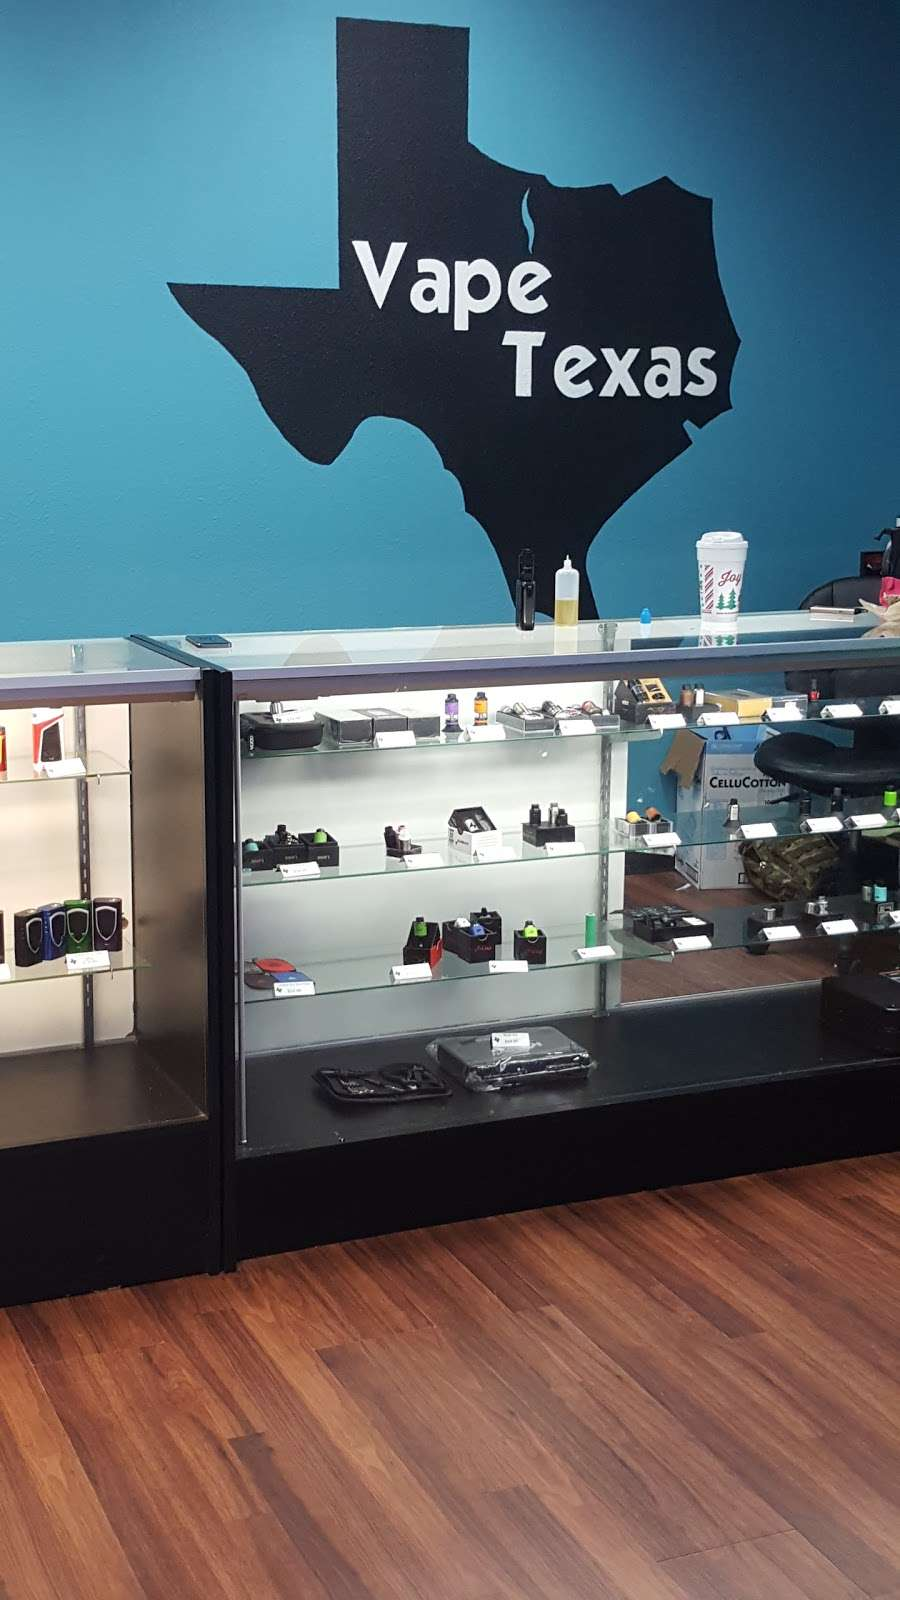 Vape Texas - store  | Photo 8 of 10 | Address: 1712 N Frazier St # 114, Conroe, TX 77301, USA | Phone: (936) 703-5028